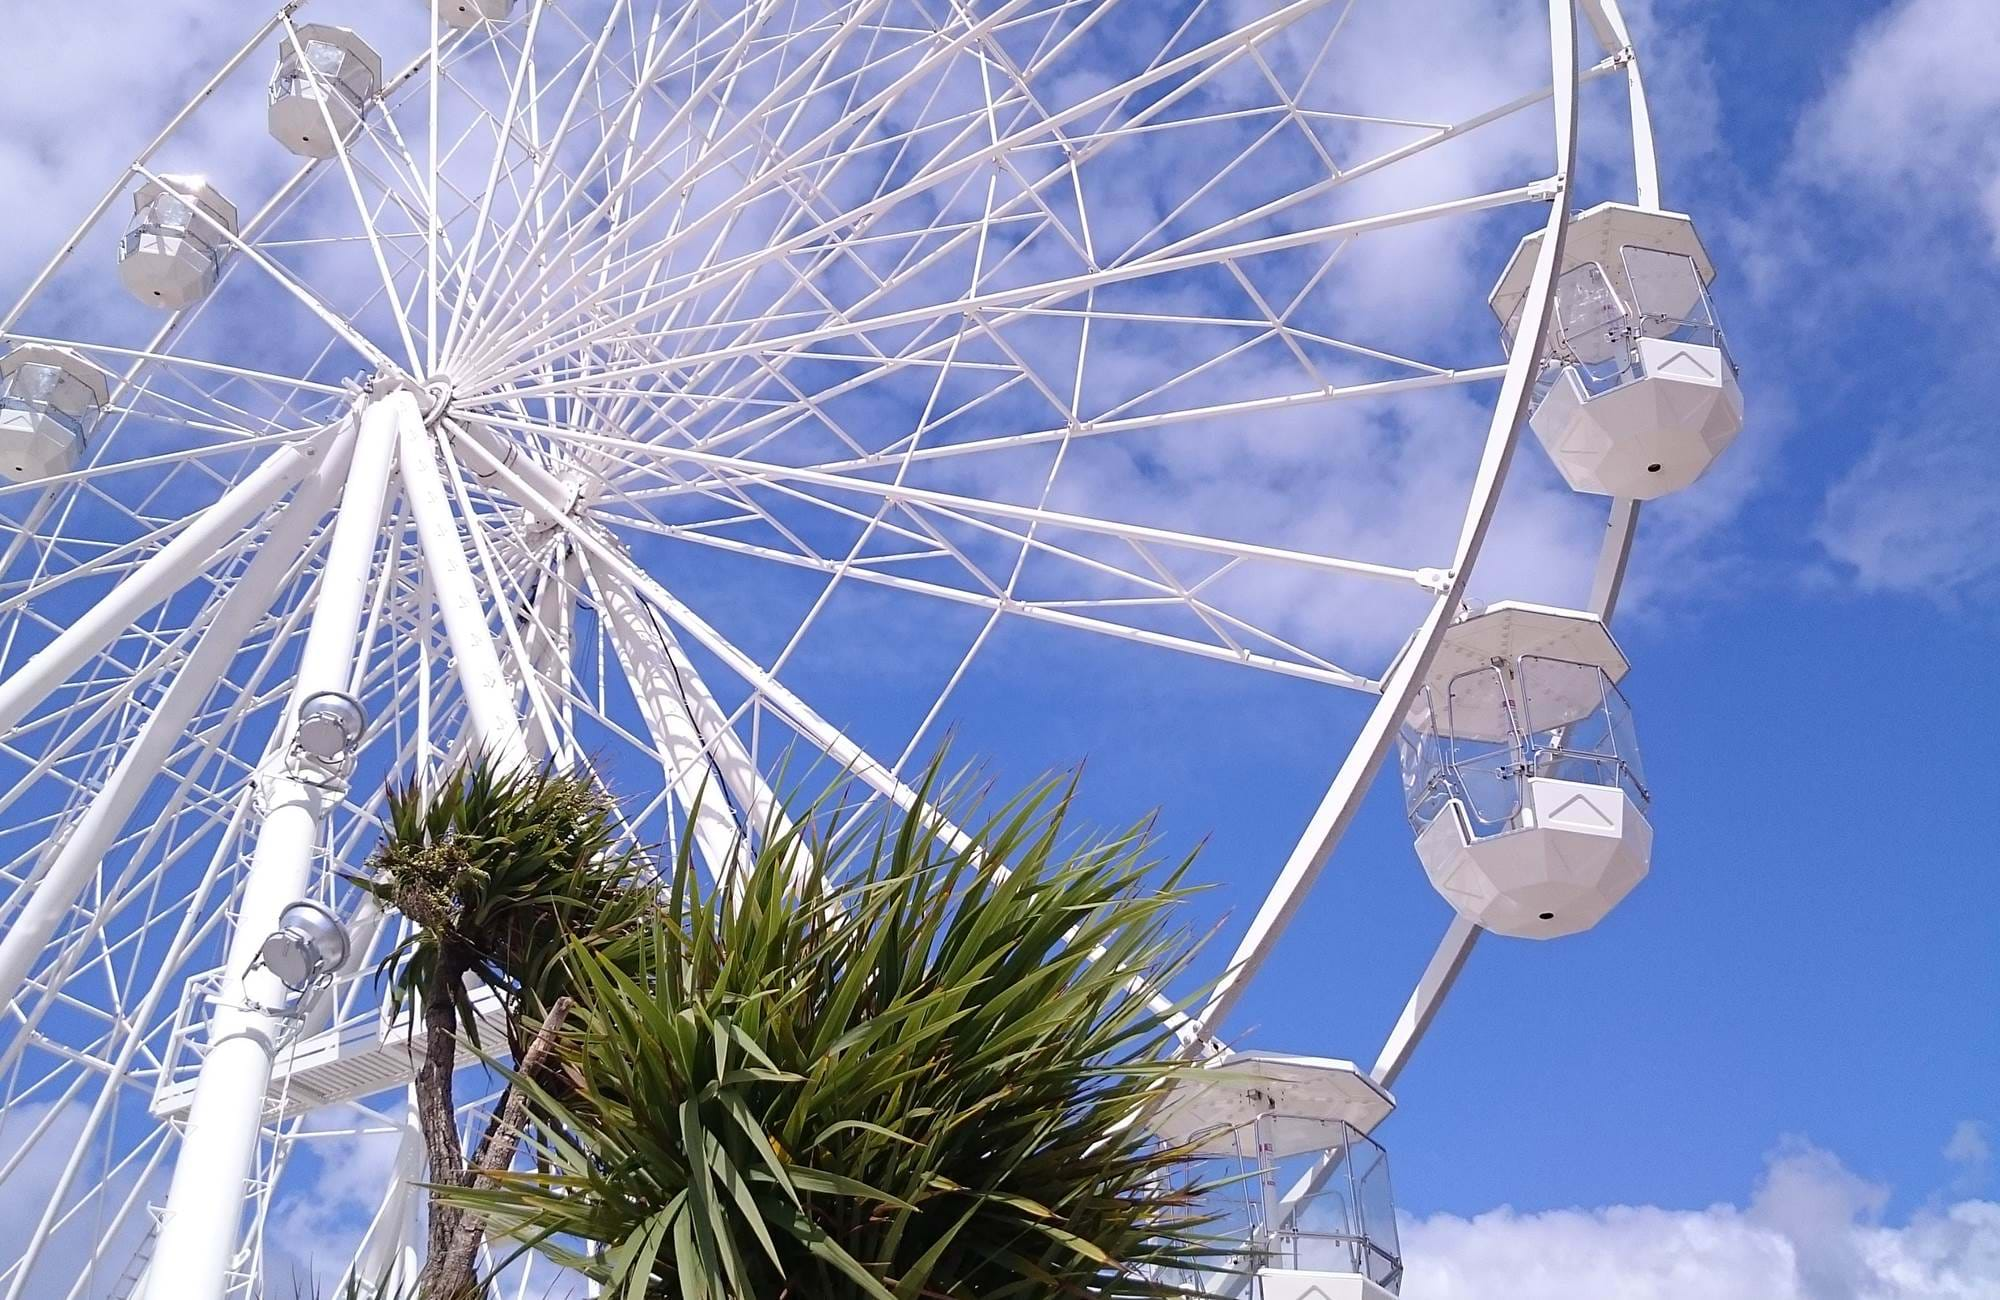 bournemouth-united-kingdom-paris-wheel